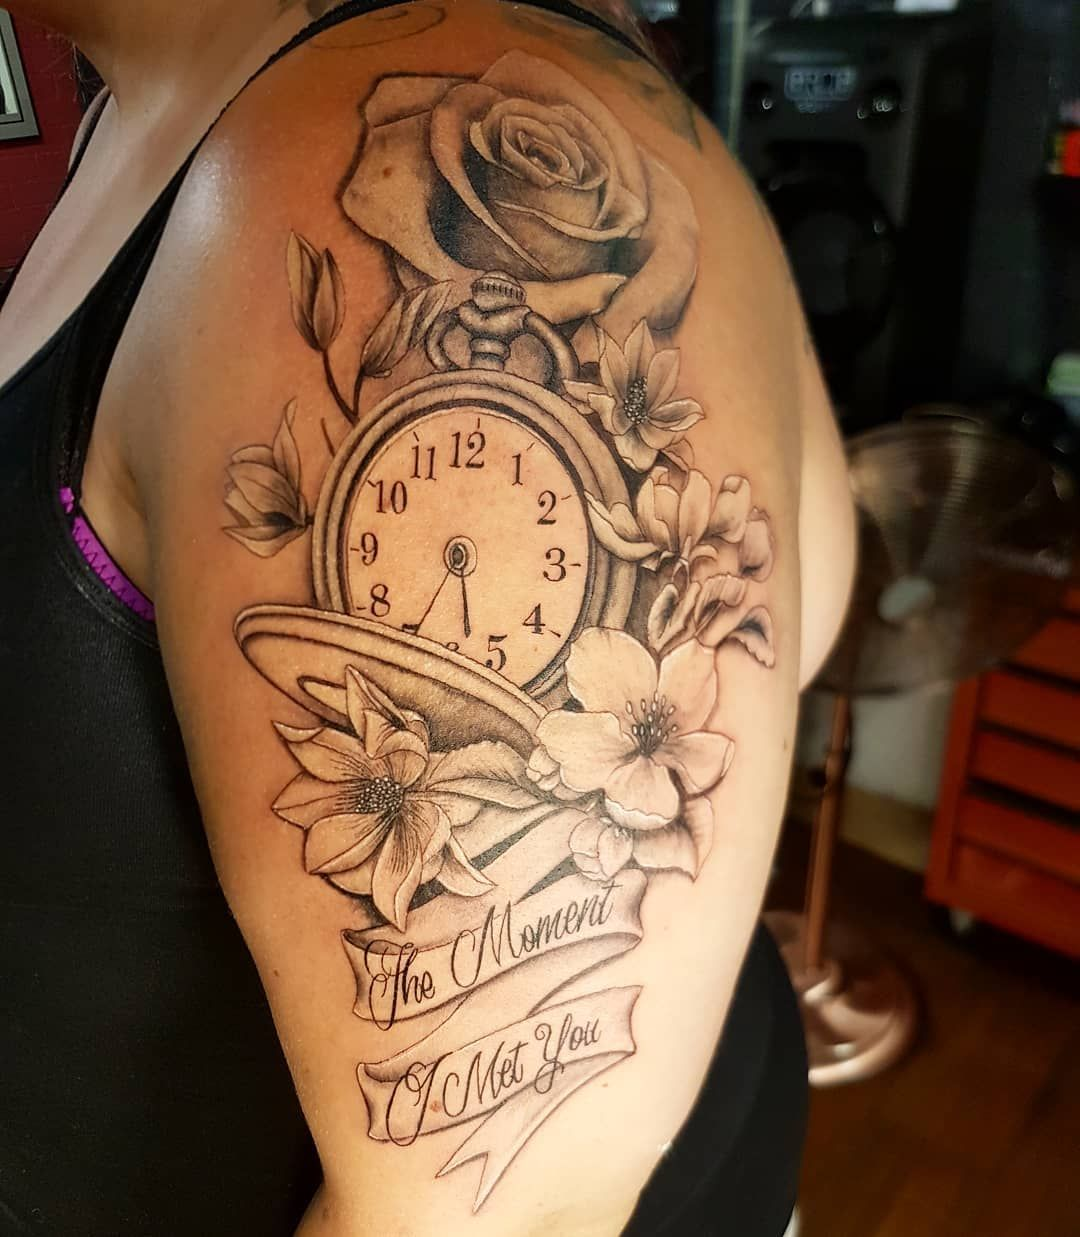 For My Friend For Her New Baby Girl Mommy Mum Daughter Tattooideas Dieselcityink Tattoomodel Tattoos For Kids Tattoos For Daughters Tattoo For Baby Girl